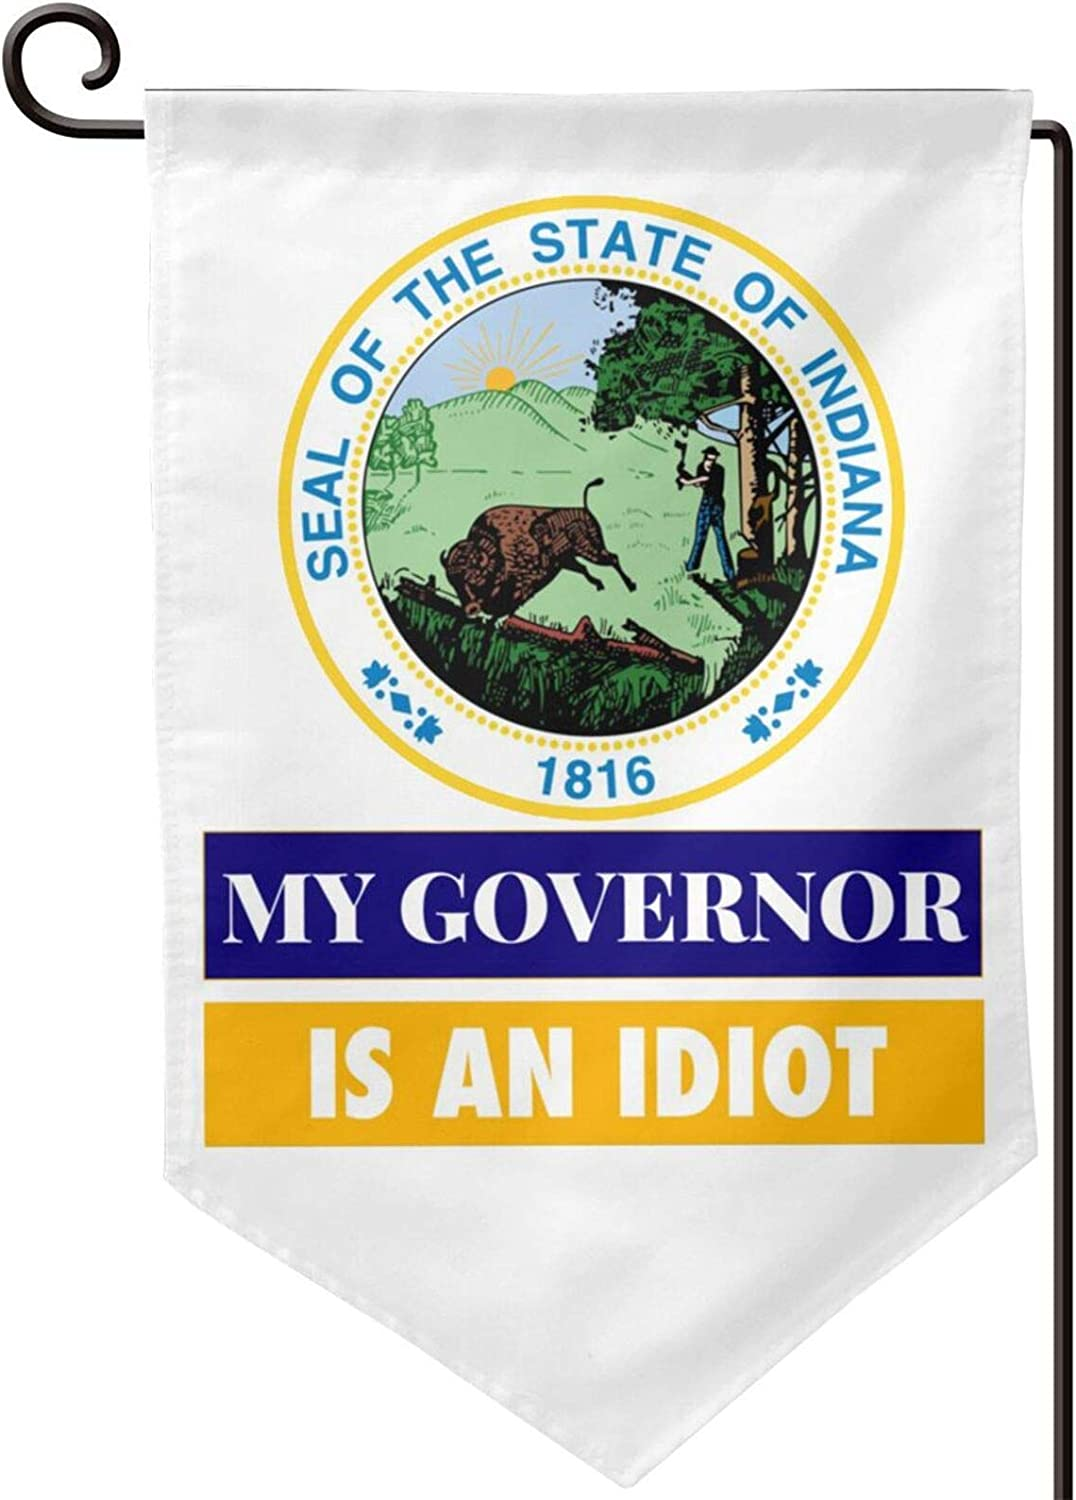 Cbxzyzzc My Governor is an Indiana Idaho Double-Sized Print Decorative Holiday Home Flag12.5 X 18 Inch Two Sided Inches American Flags USA Garden Flag